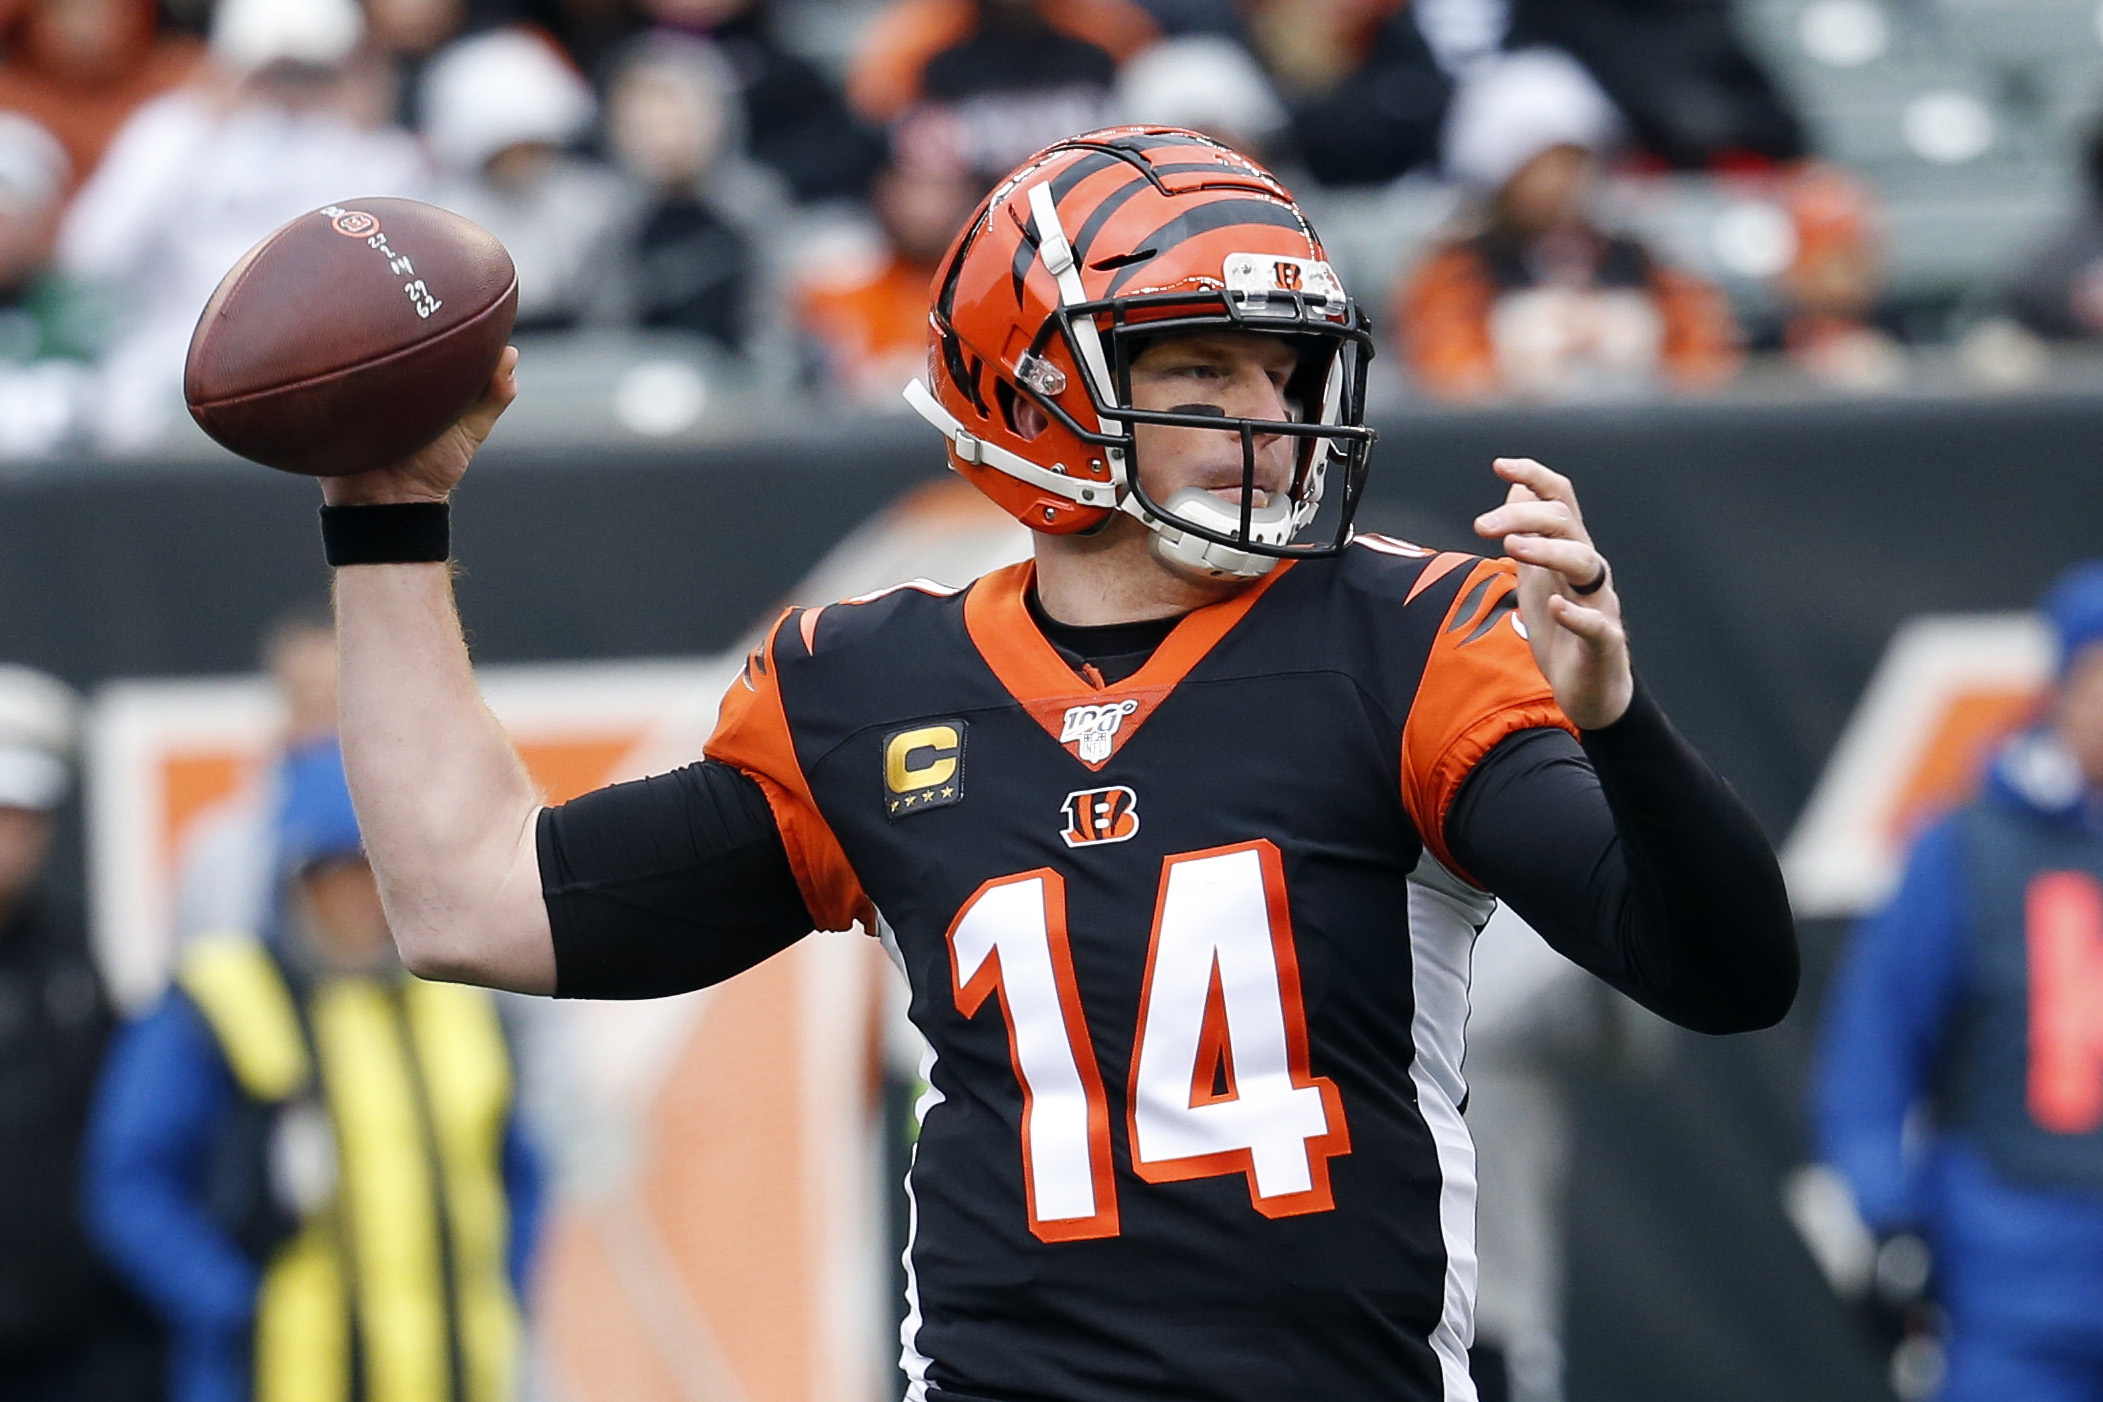 Dalton returns and leads Bengals to 1st win, 22-6 over Jets